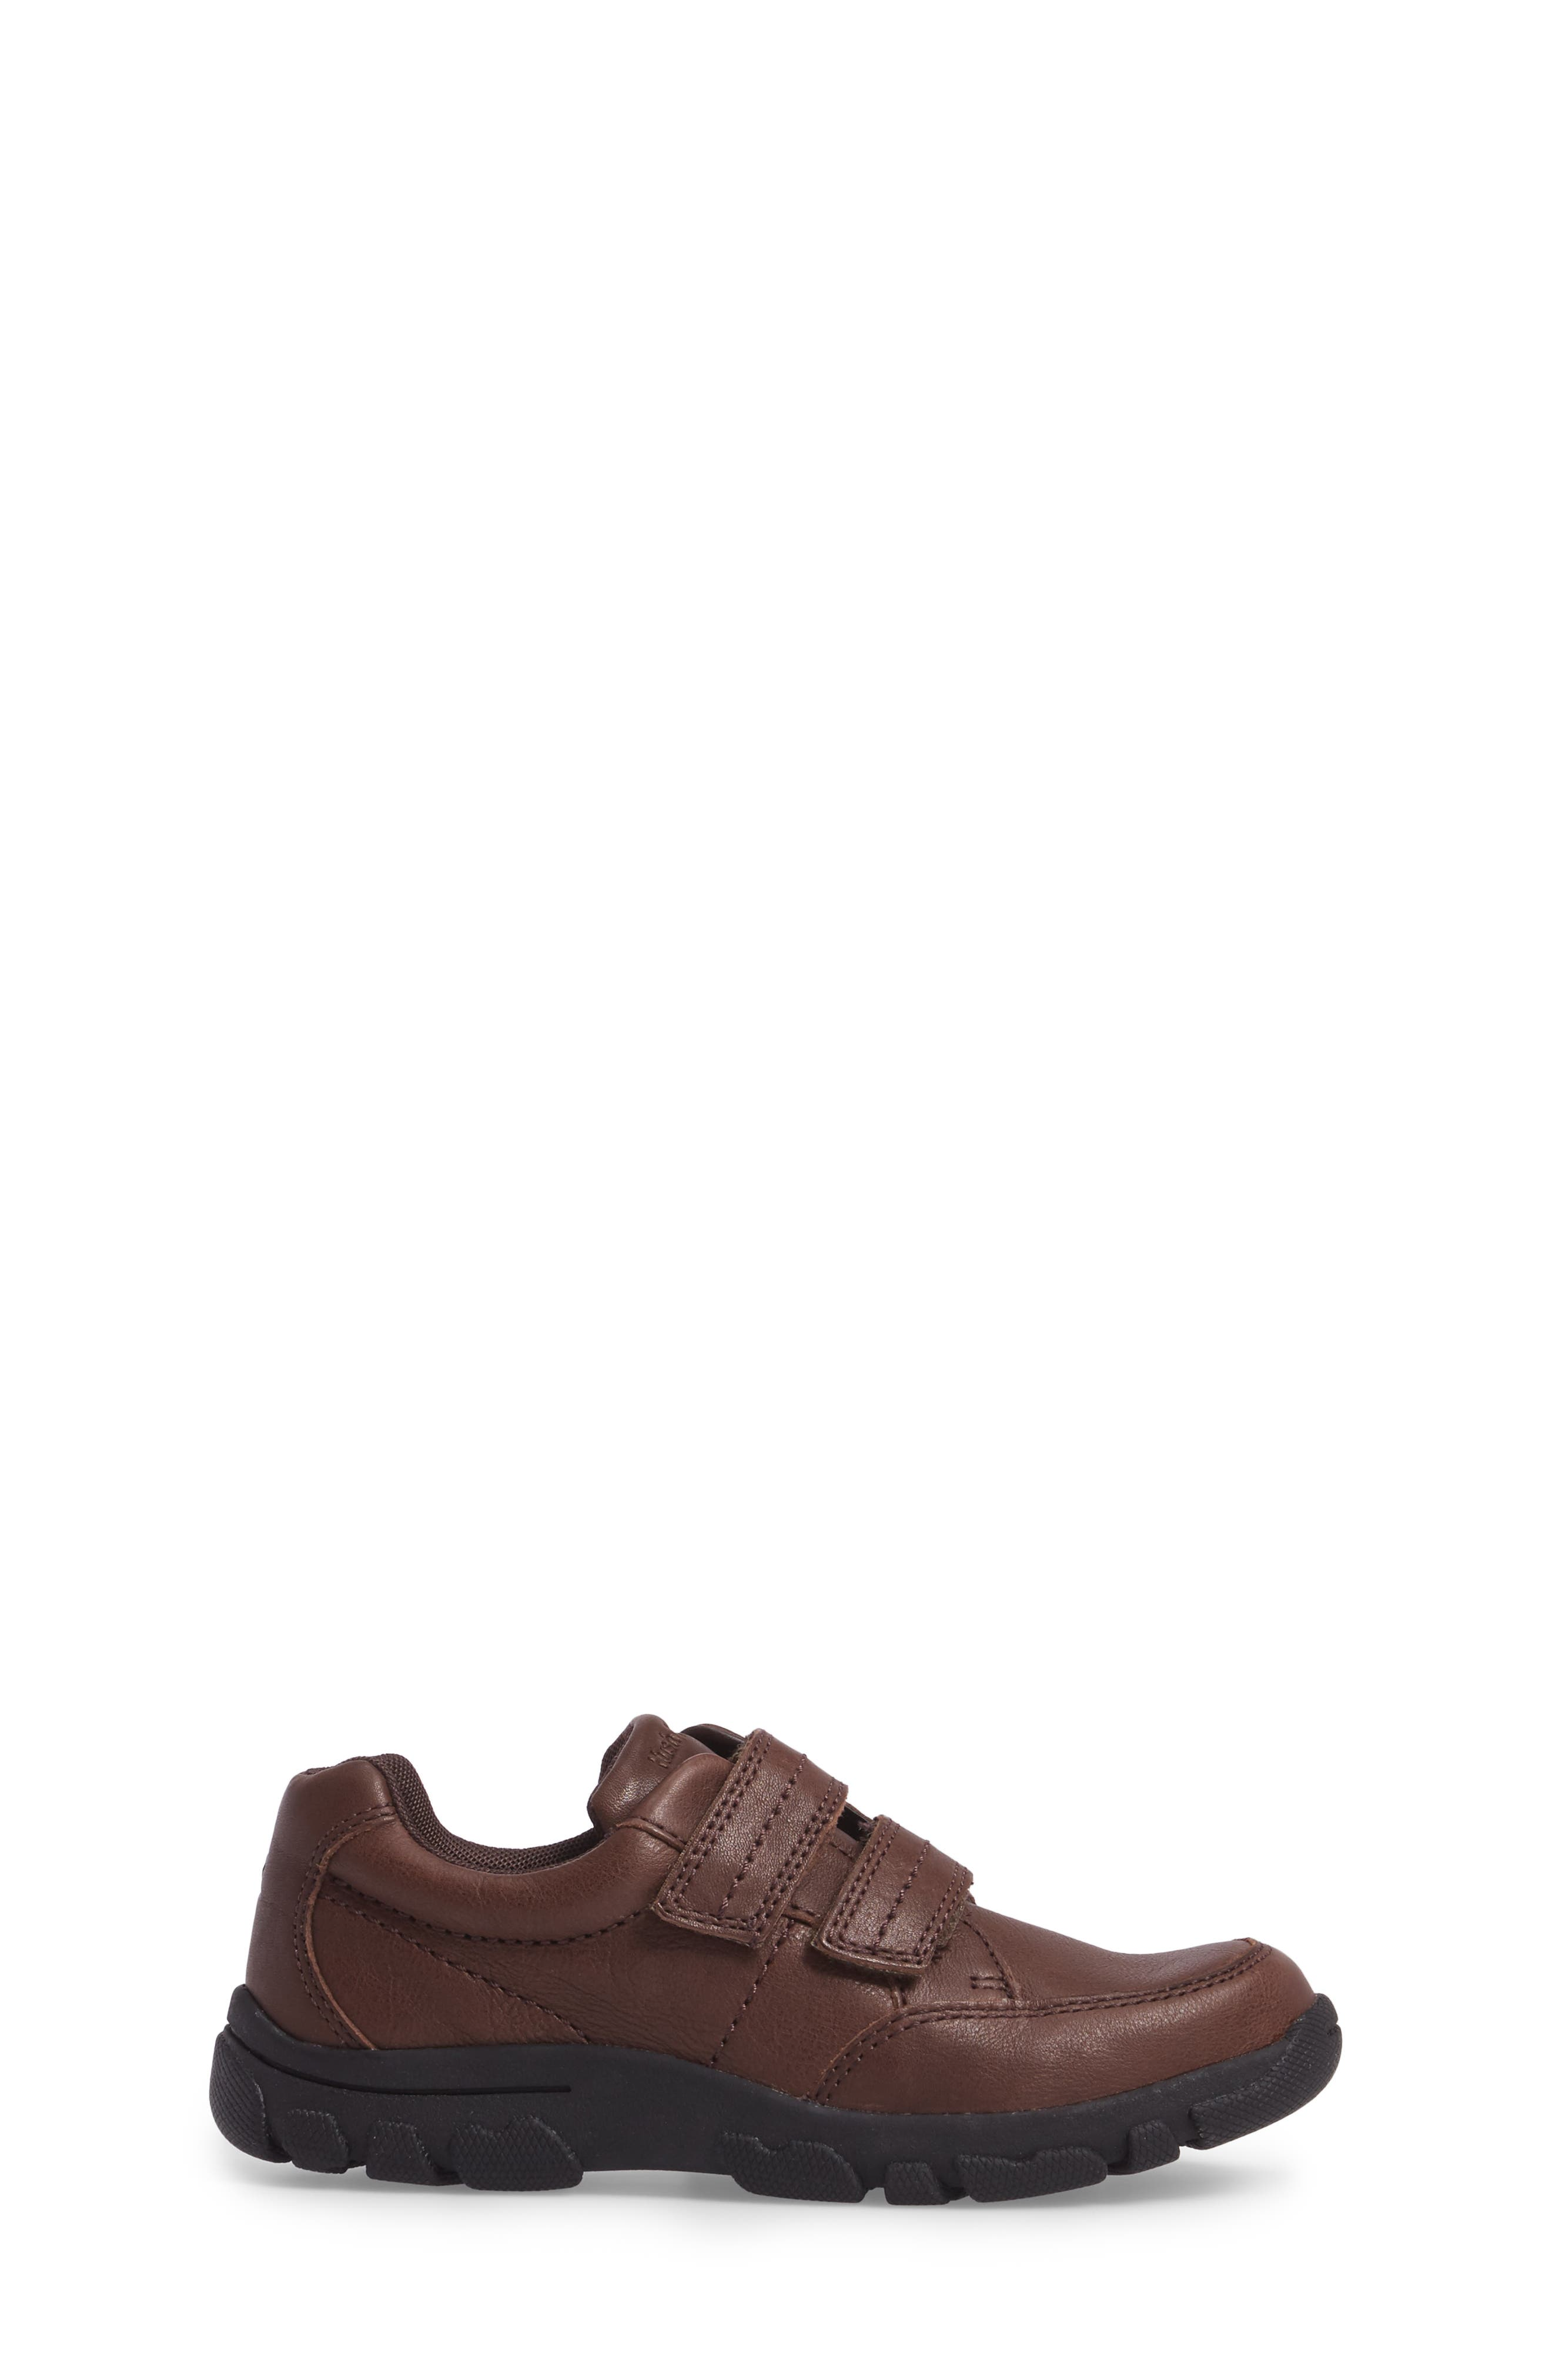 Jace Dress Sneaker,                             Alternate thumbnail 3, color,                             Brown Leather